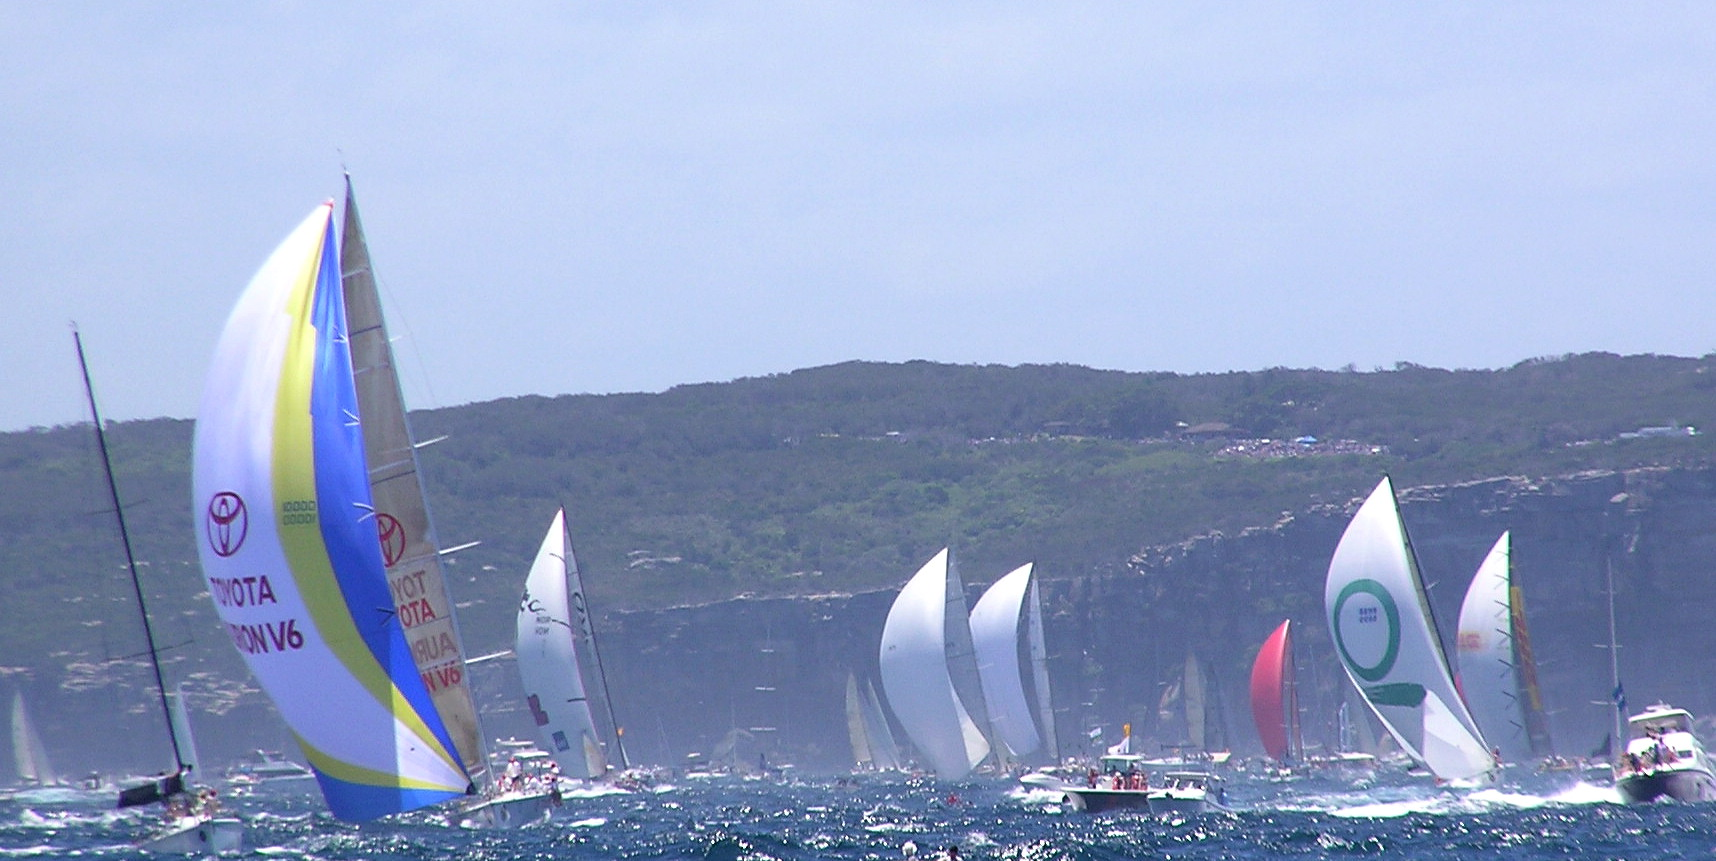 Hobart Race Fleet